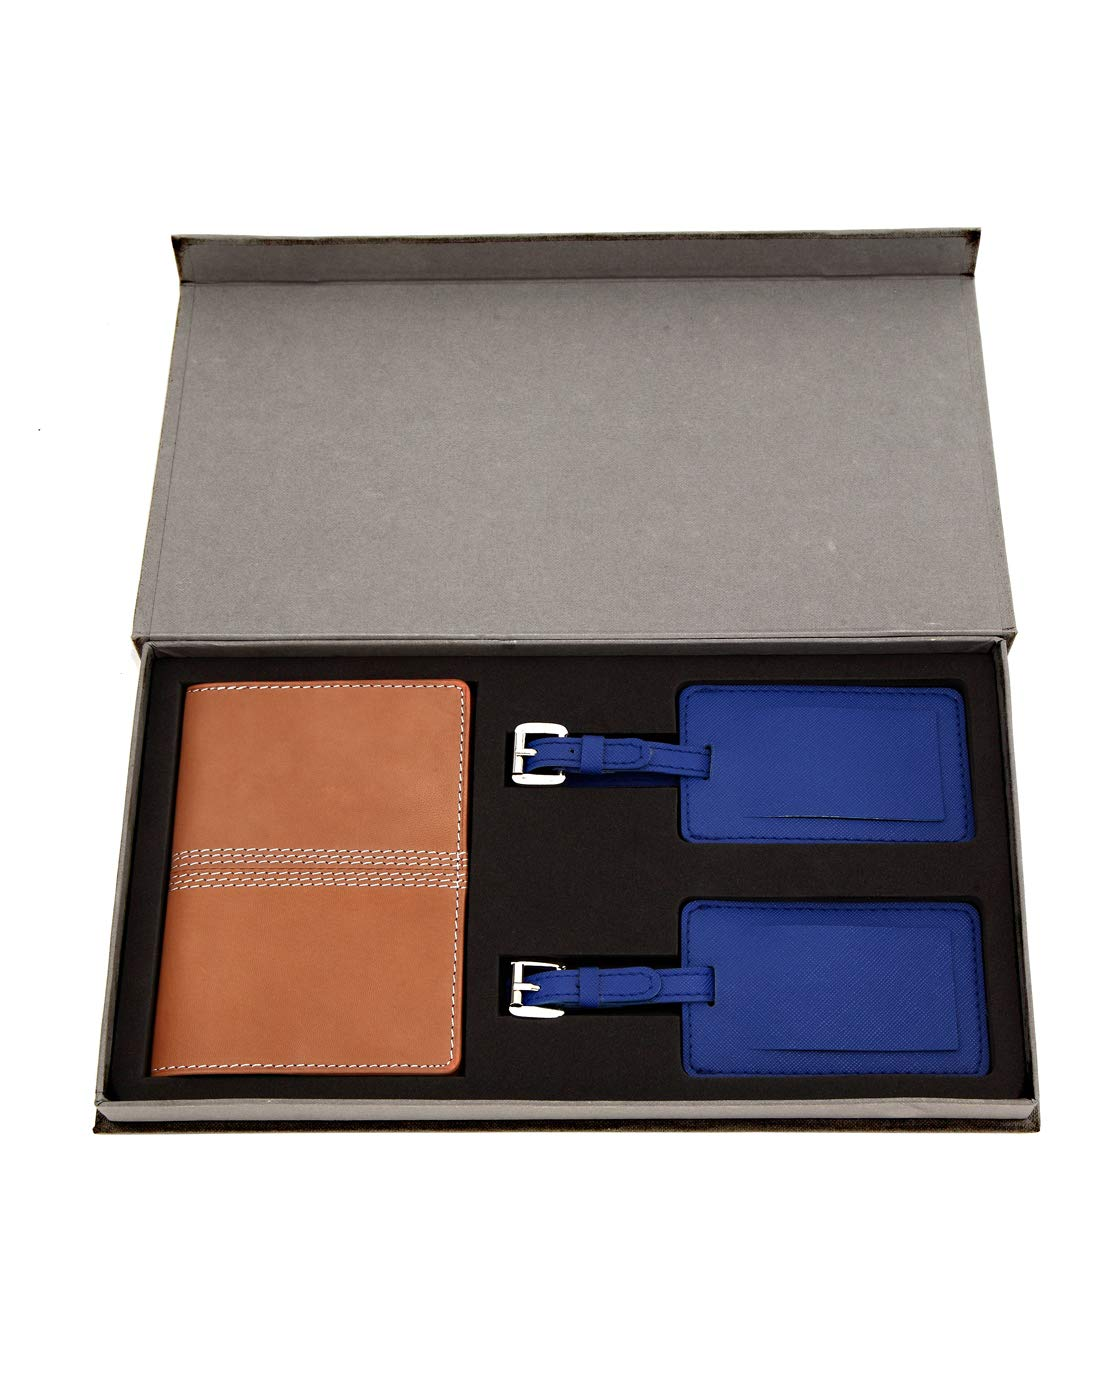 JL Collections Beige Leather Passport Holder with Blue Luggage Tag Gift Sets (Pack of 3)